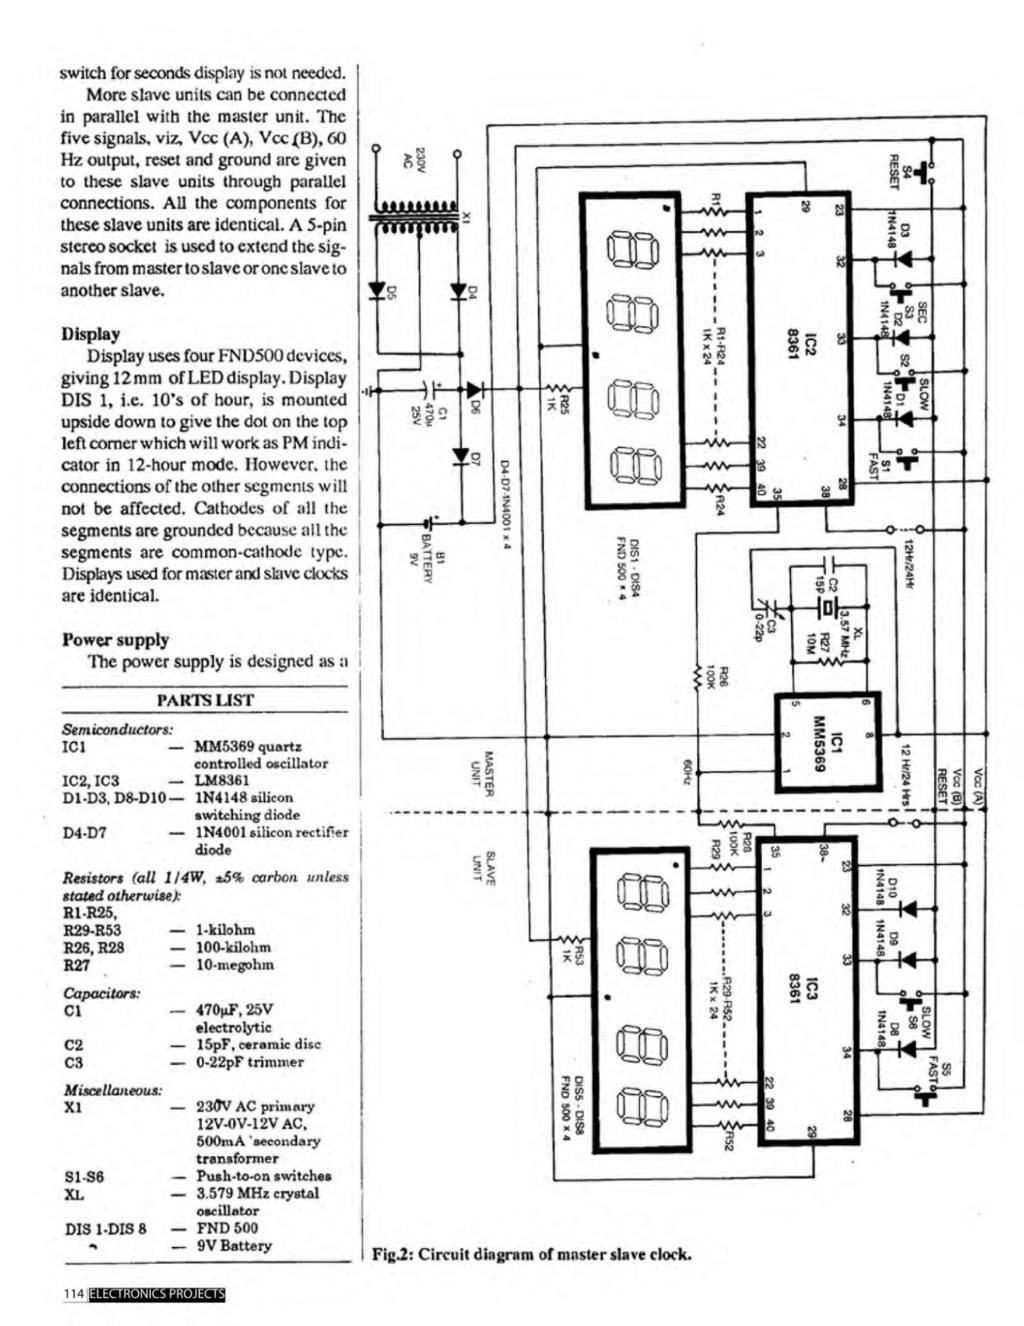 A Compilation Of 102 And Circuit Ideas For Construction Projects Lm324 1khz Bandpass Filter Electronic Circuits Schematics Diagram Switch Seconds Display Is Not Needed More Slave Units Can Be Connected In Parallel